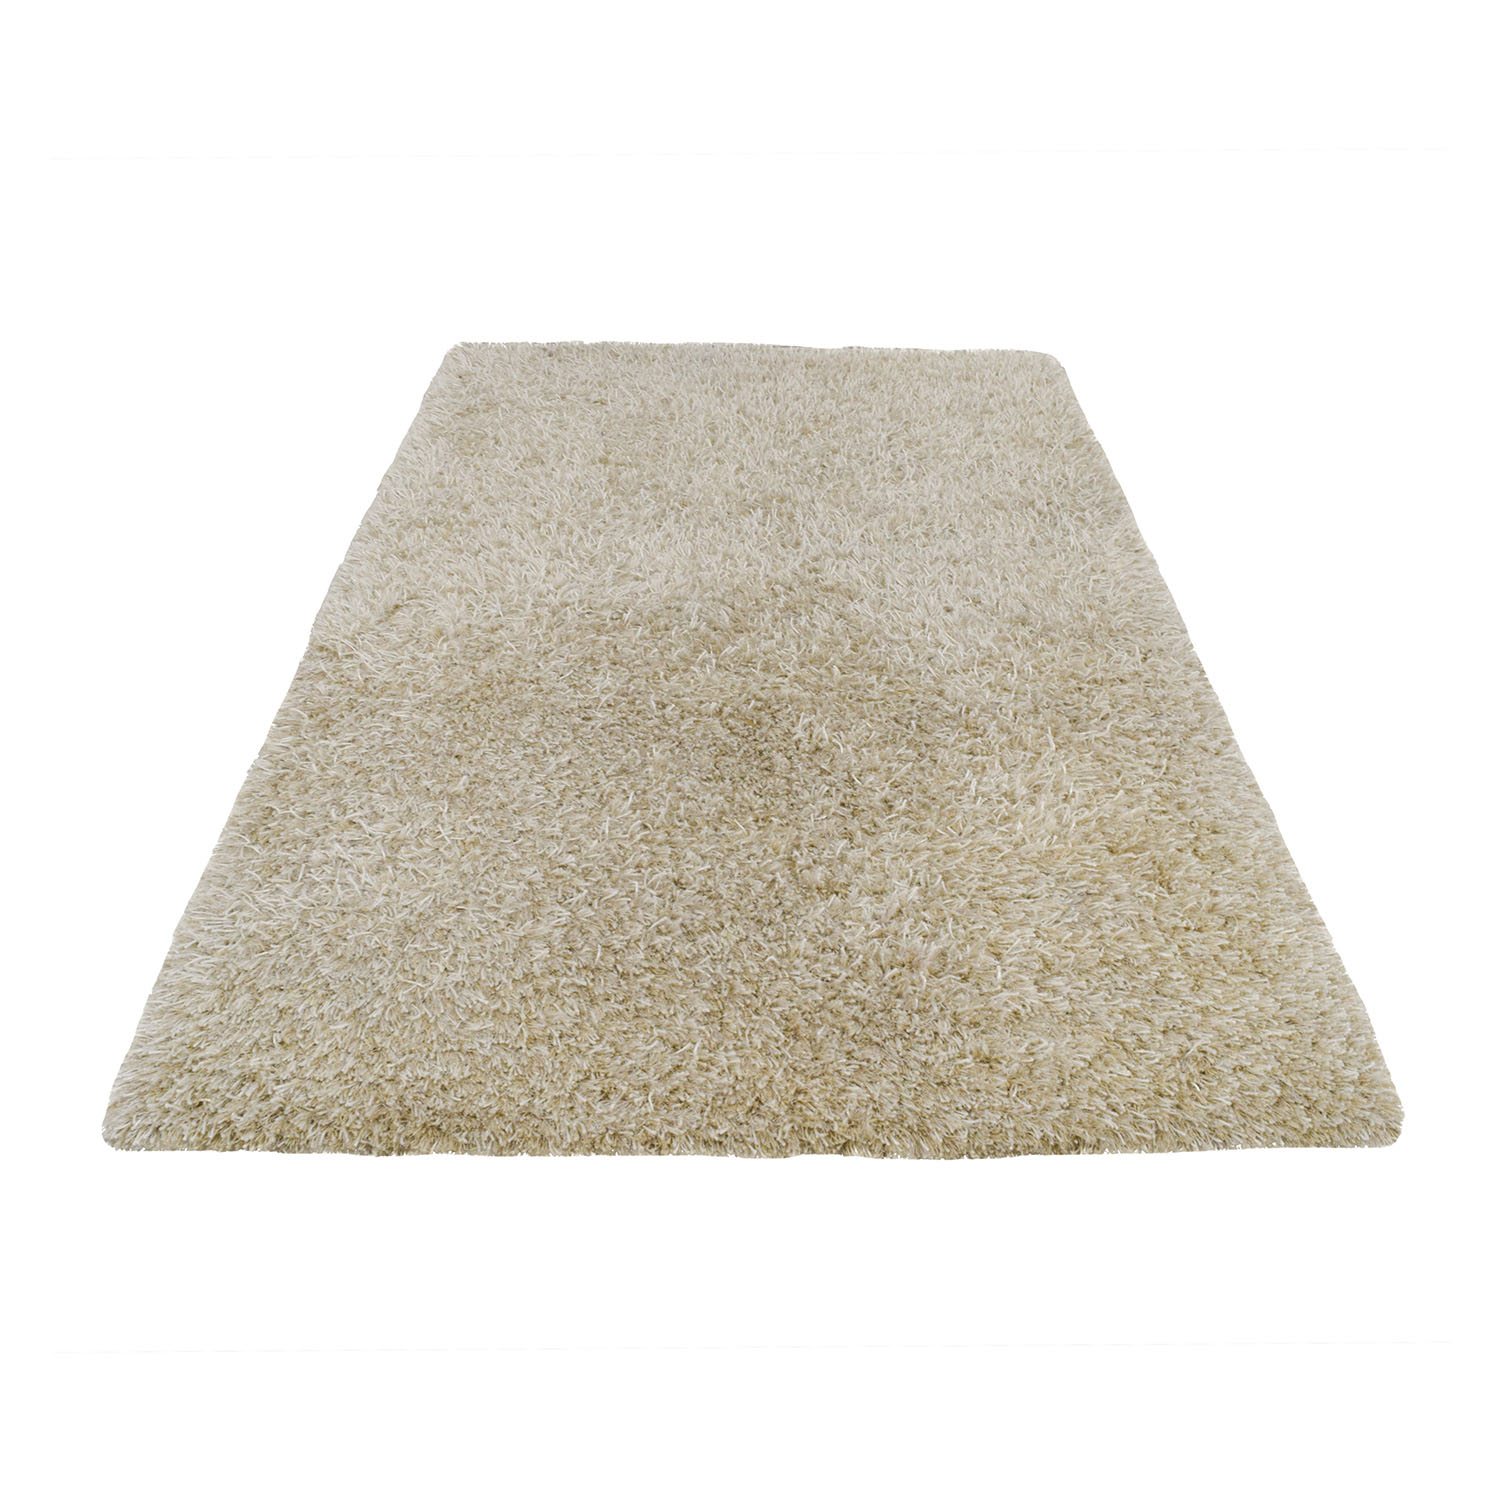 CB2 CB2 Drake Natural Shag Rug for sale